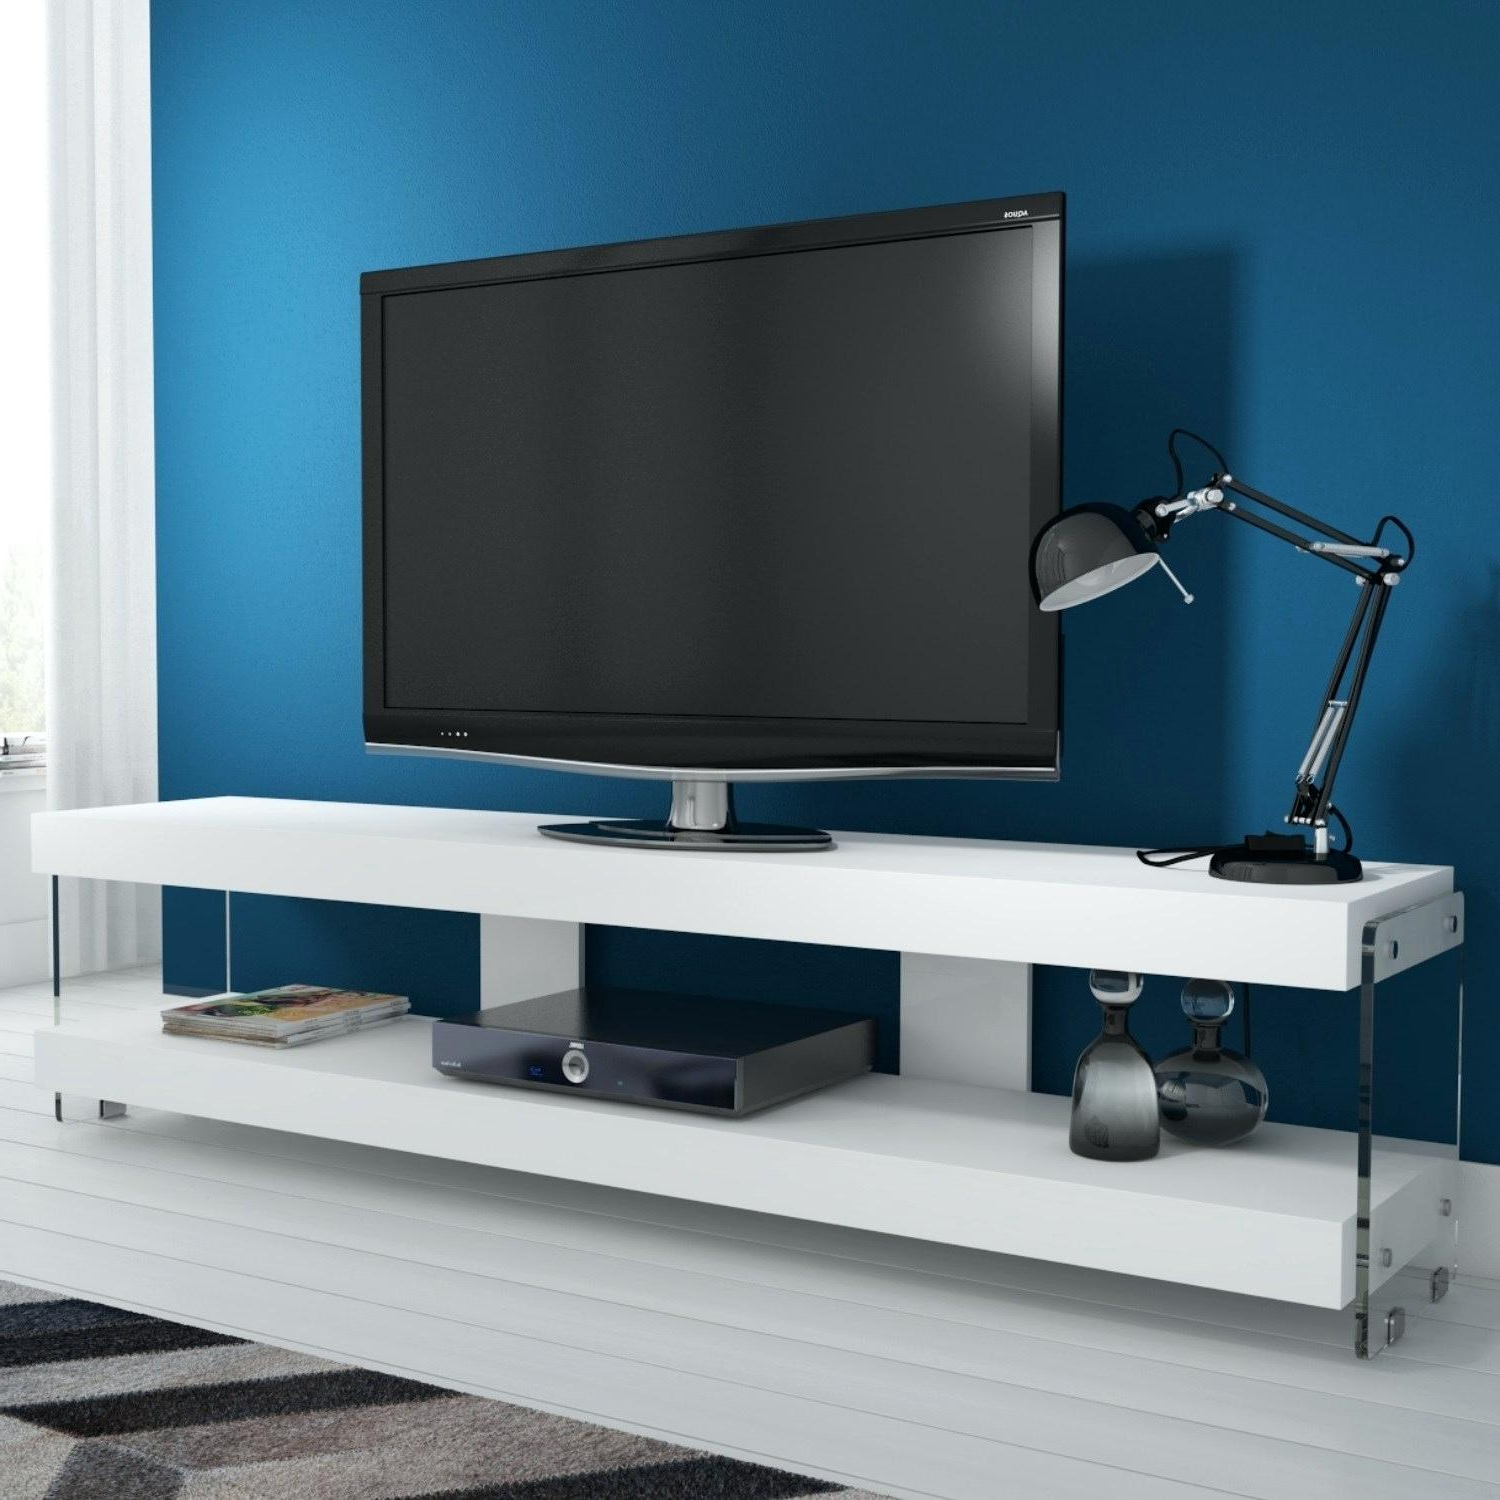 Well Liked High Gloss White Corner Tv Stand Comfort In 2 – Portalgier With White Gloss Corner Tv Stands (View 18 of 20)